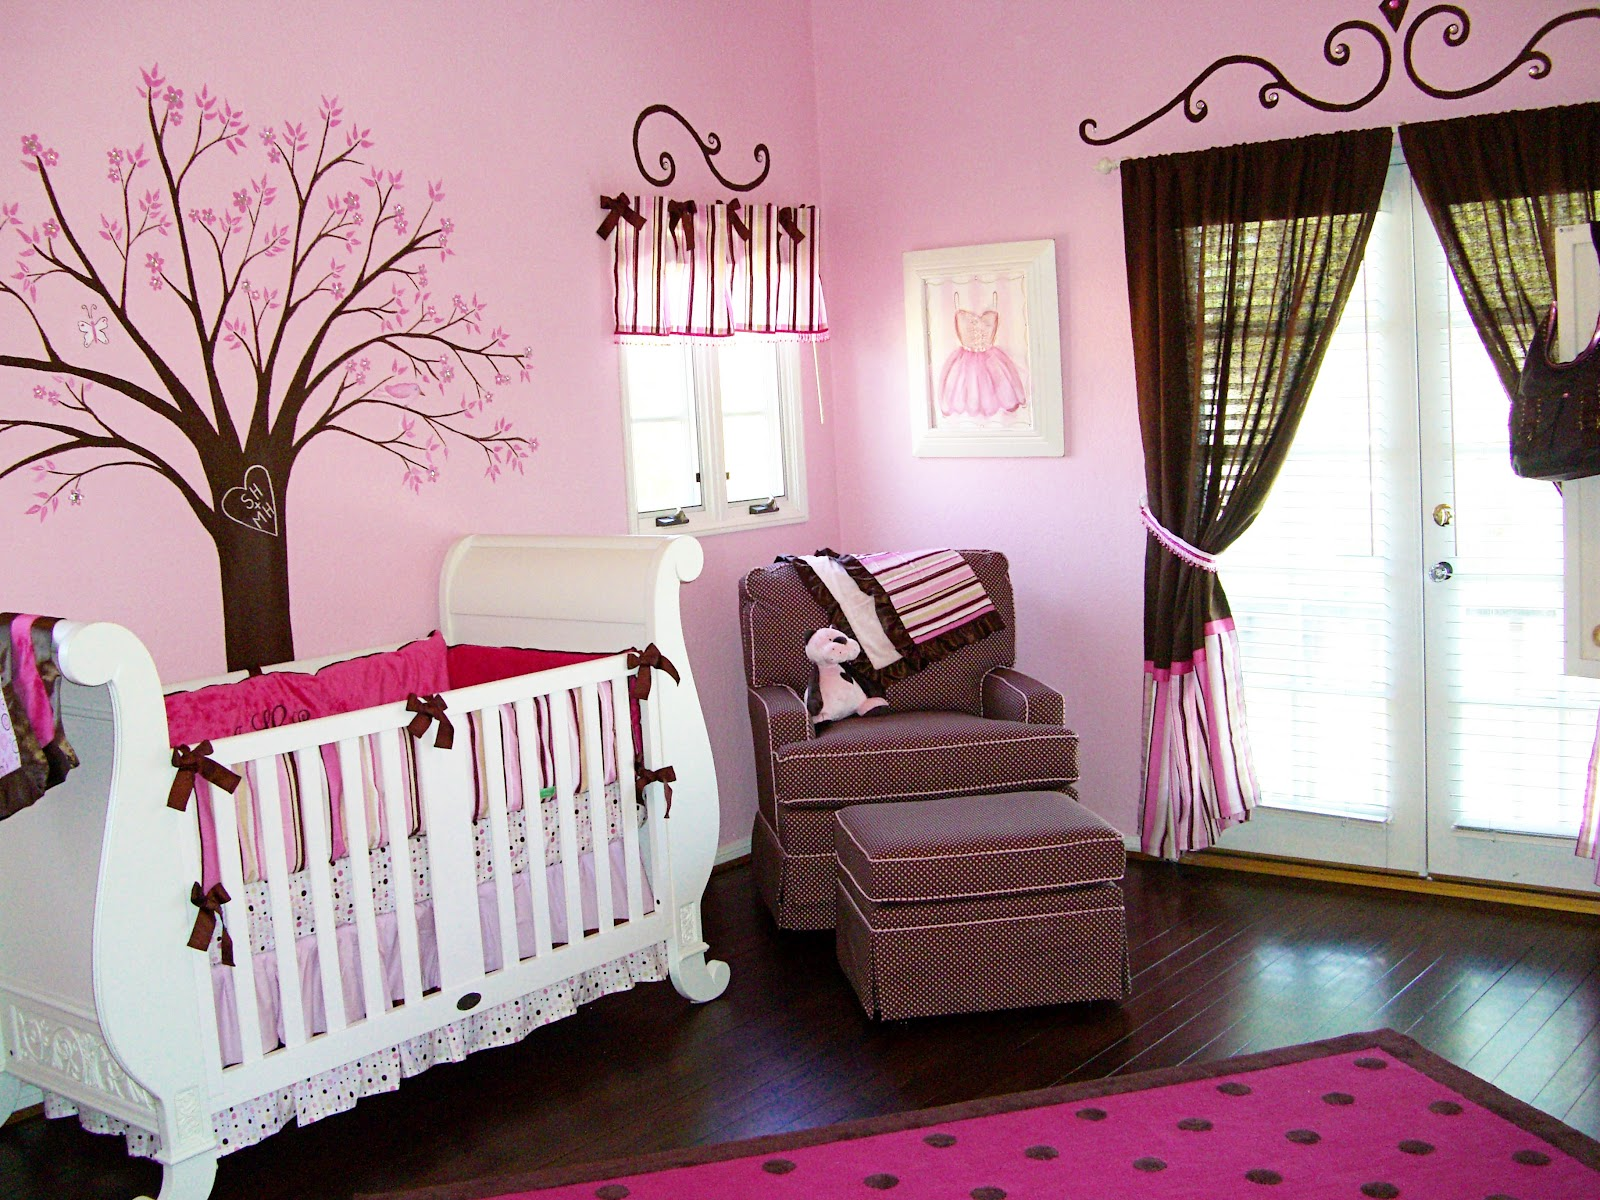 Baby nursery ideas girl. design. decorating cute decorating ...